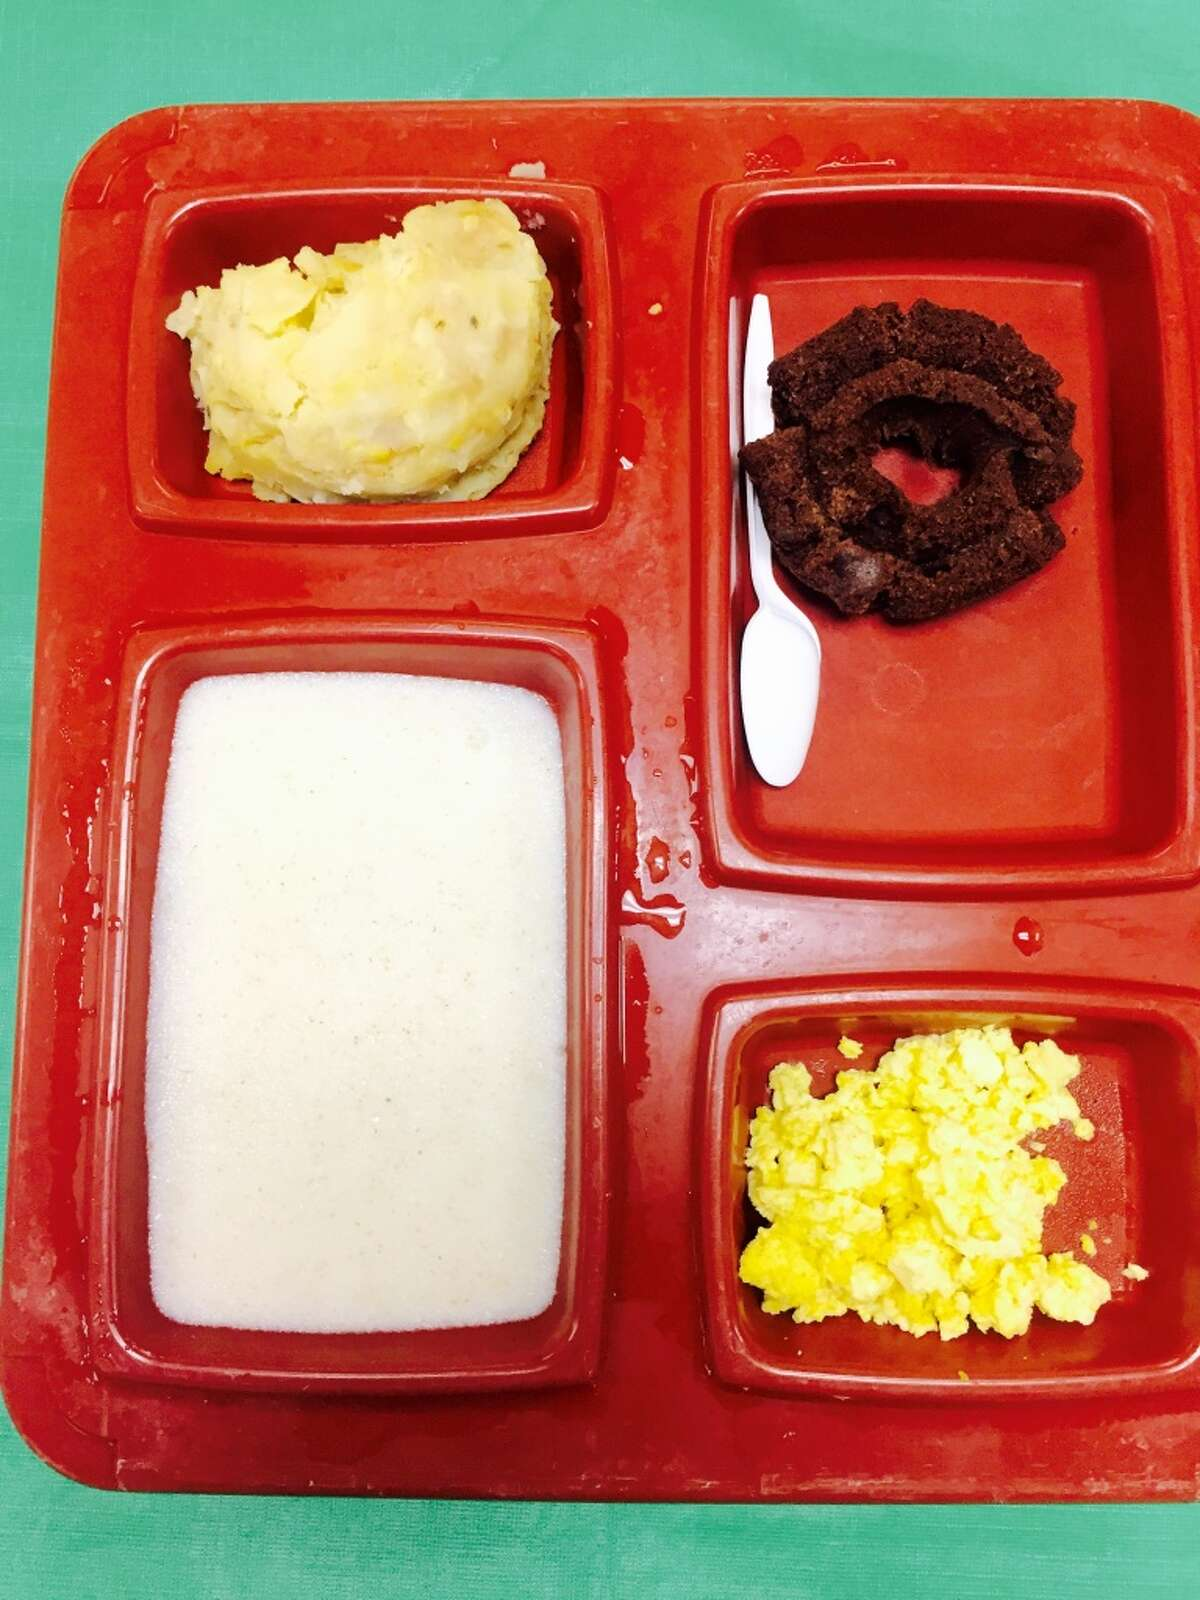 San Francisco Jail Food Served at 4 a.m., this is sweetened farina, scrambled eggs, Lyonnaise potatoes (presumably originating in the Lyon region of France) and a donut.